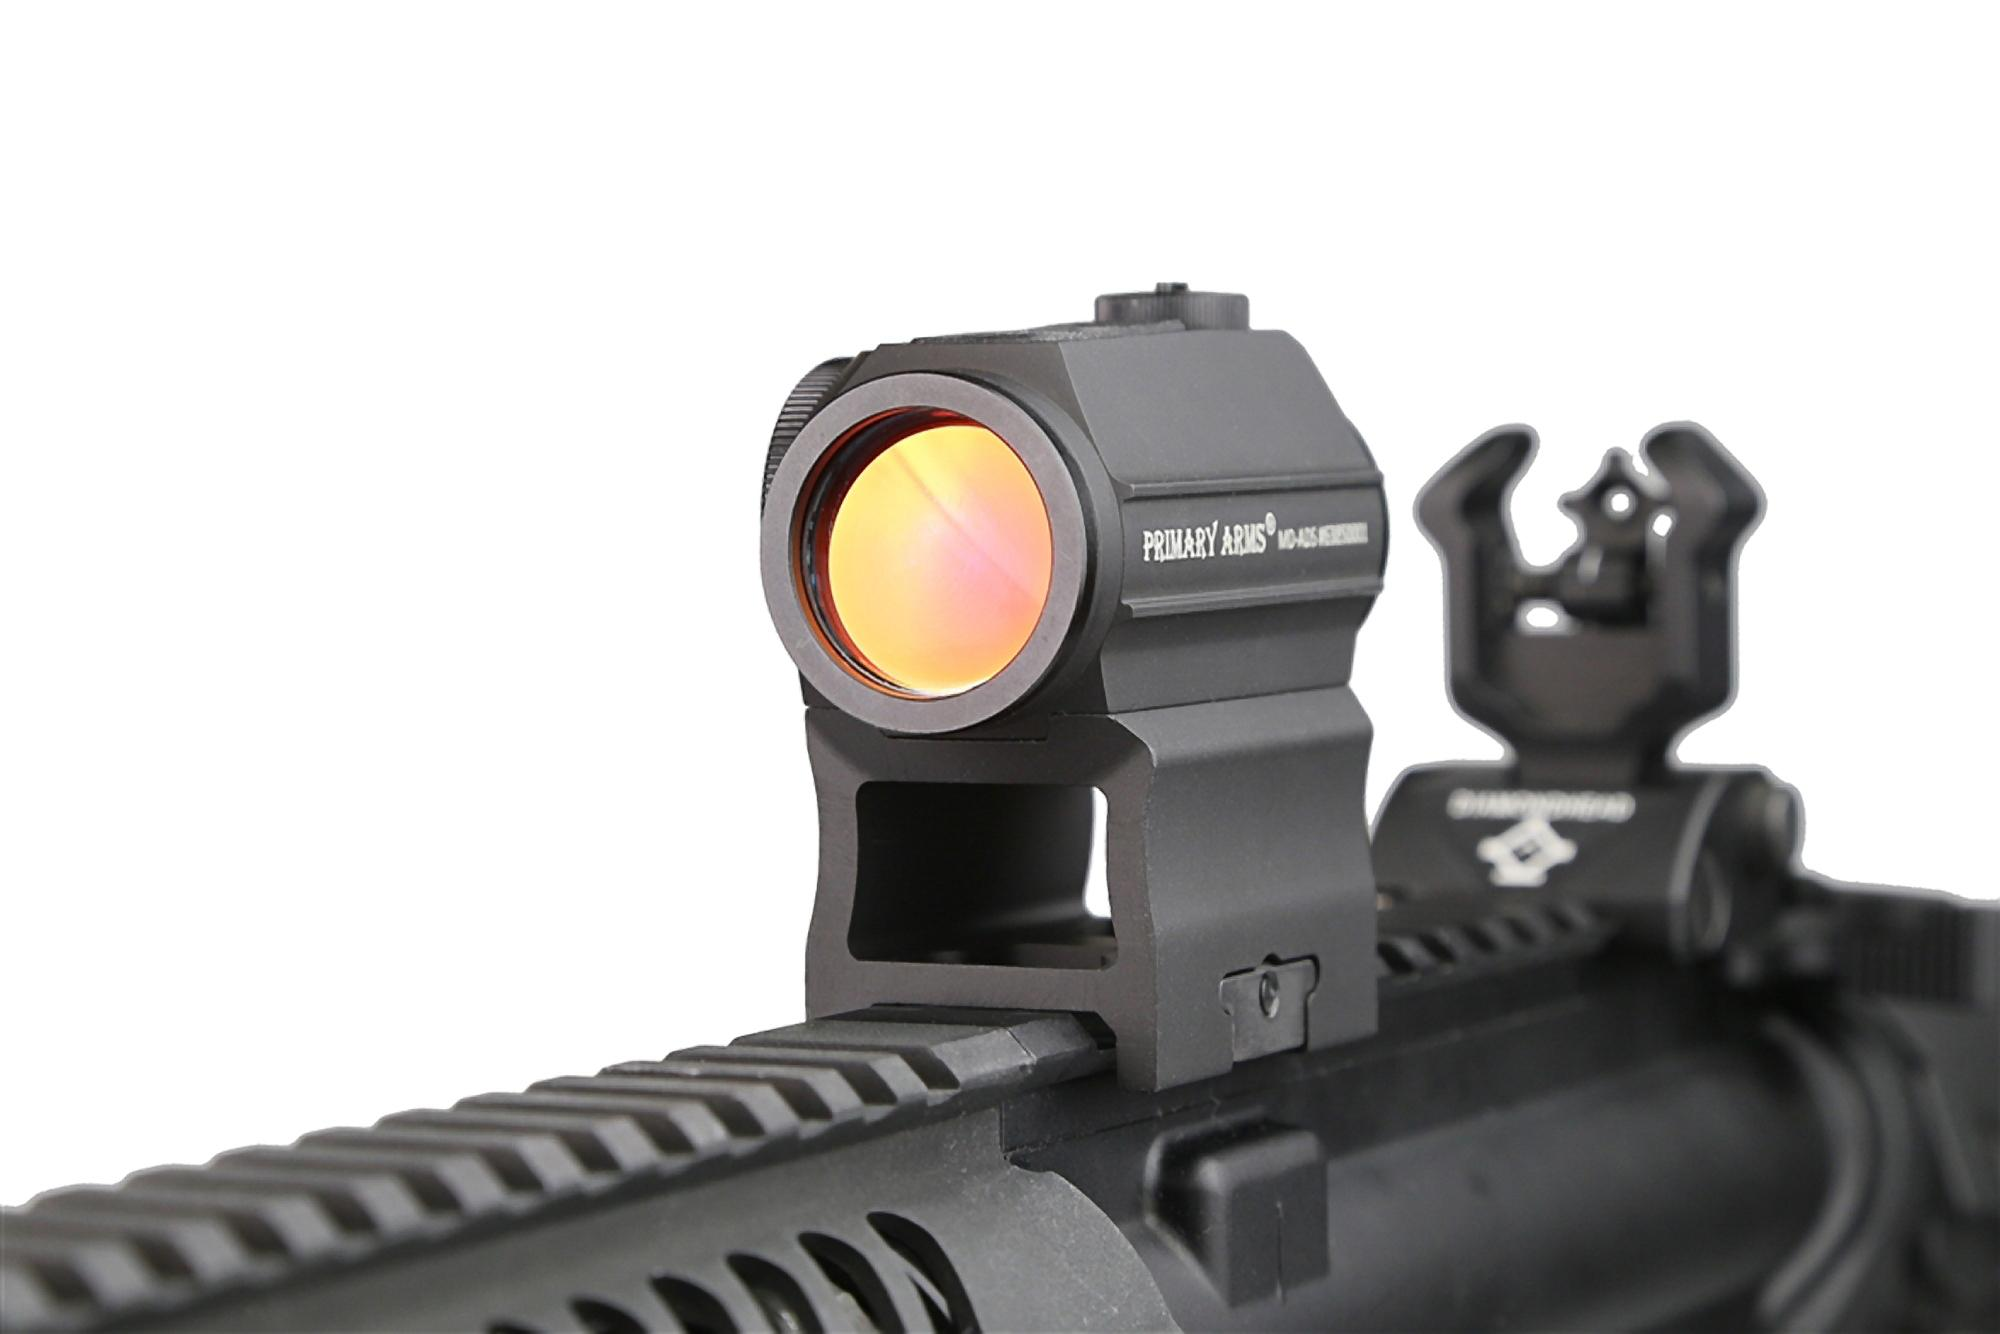 ThePrimary Arms absolute co witness red dot riser mount attached to an AR15